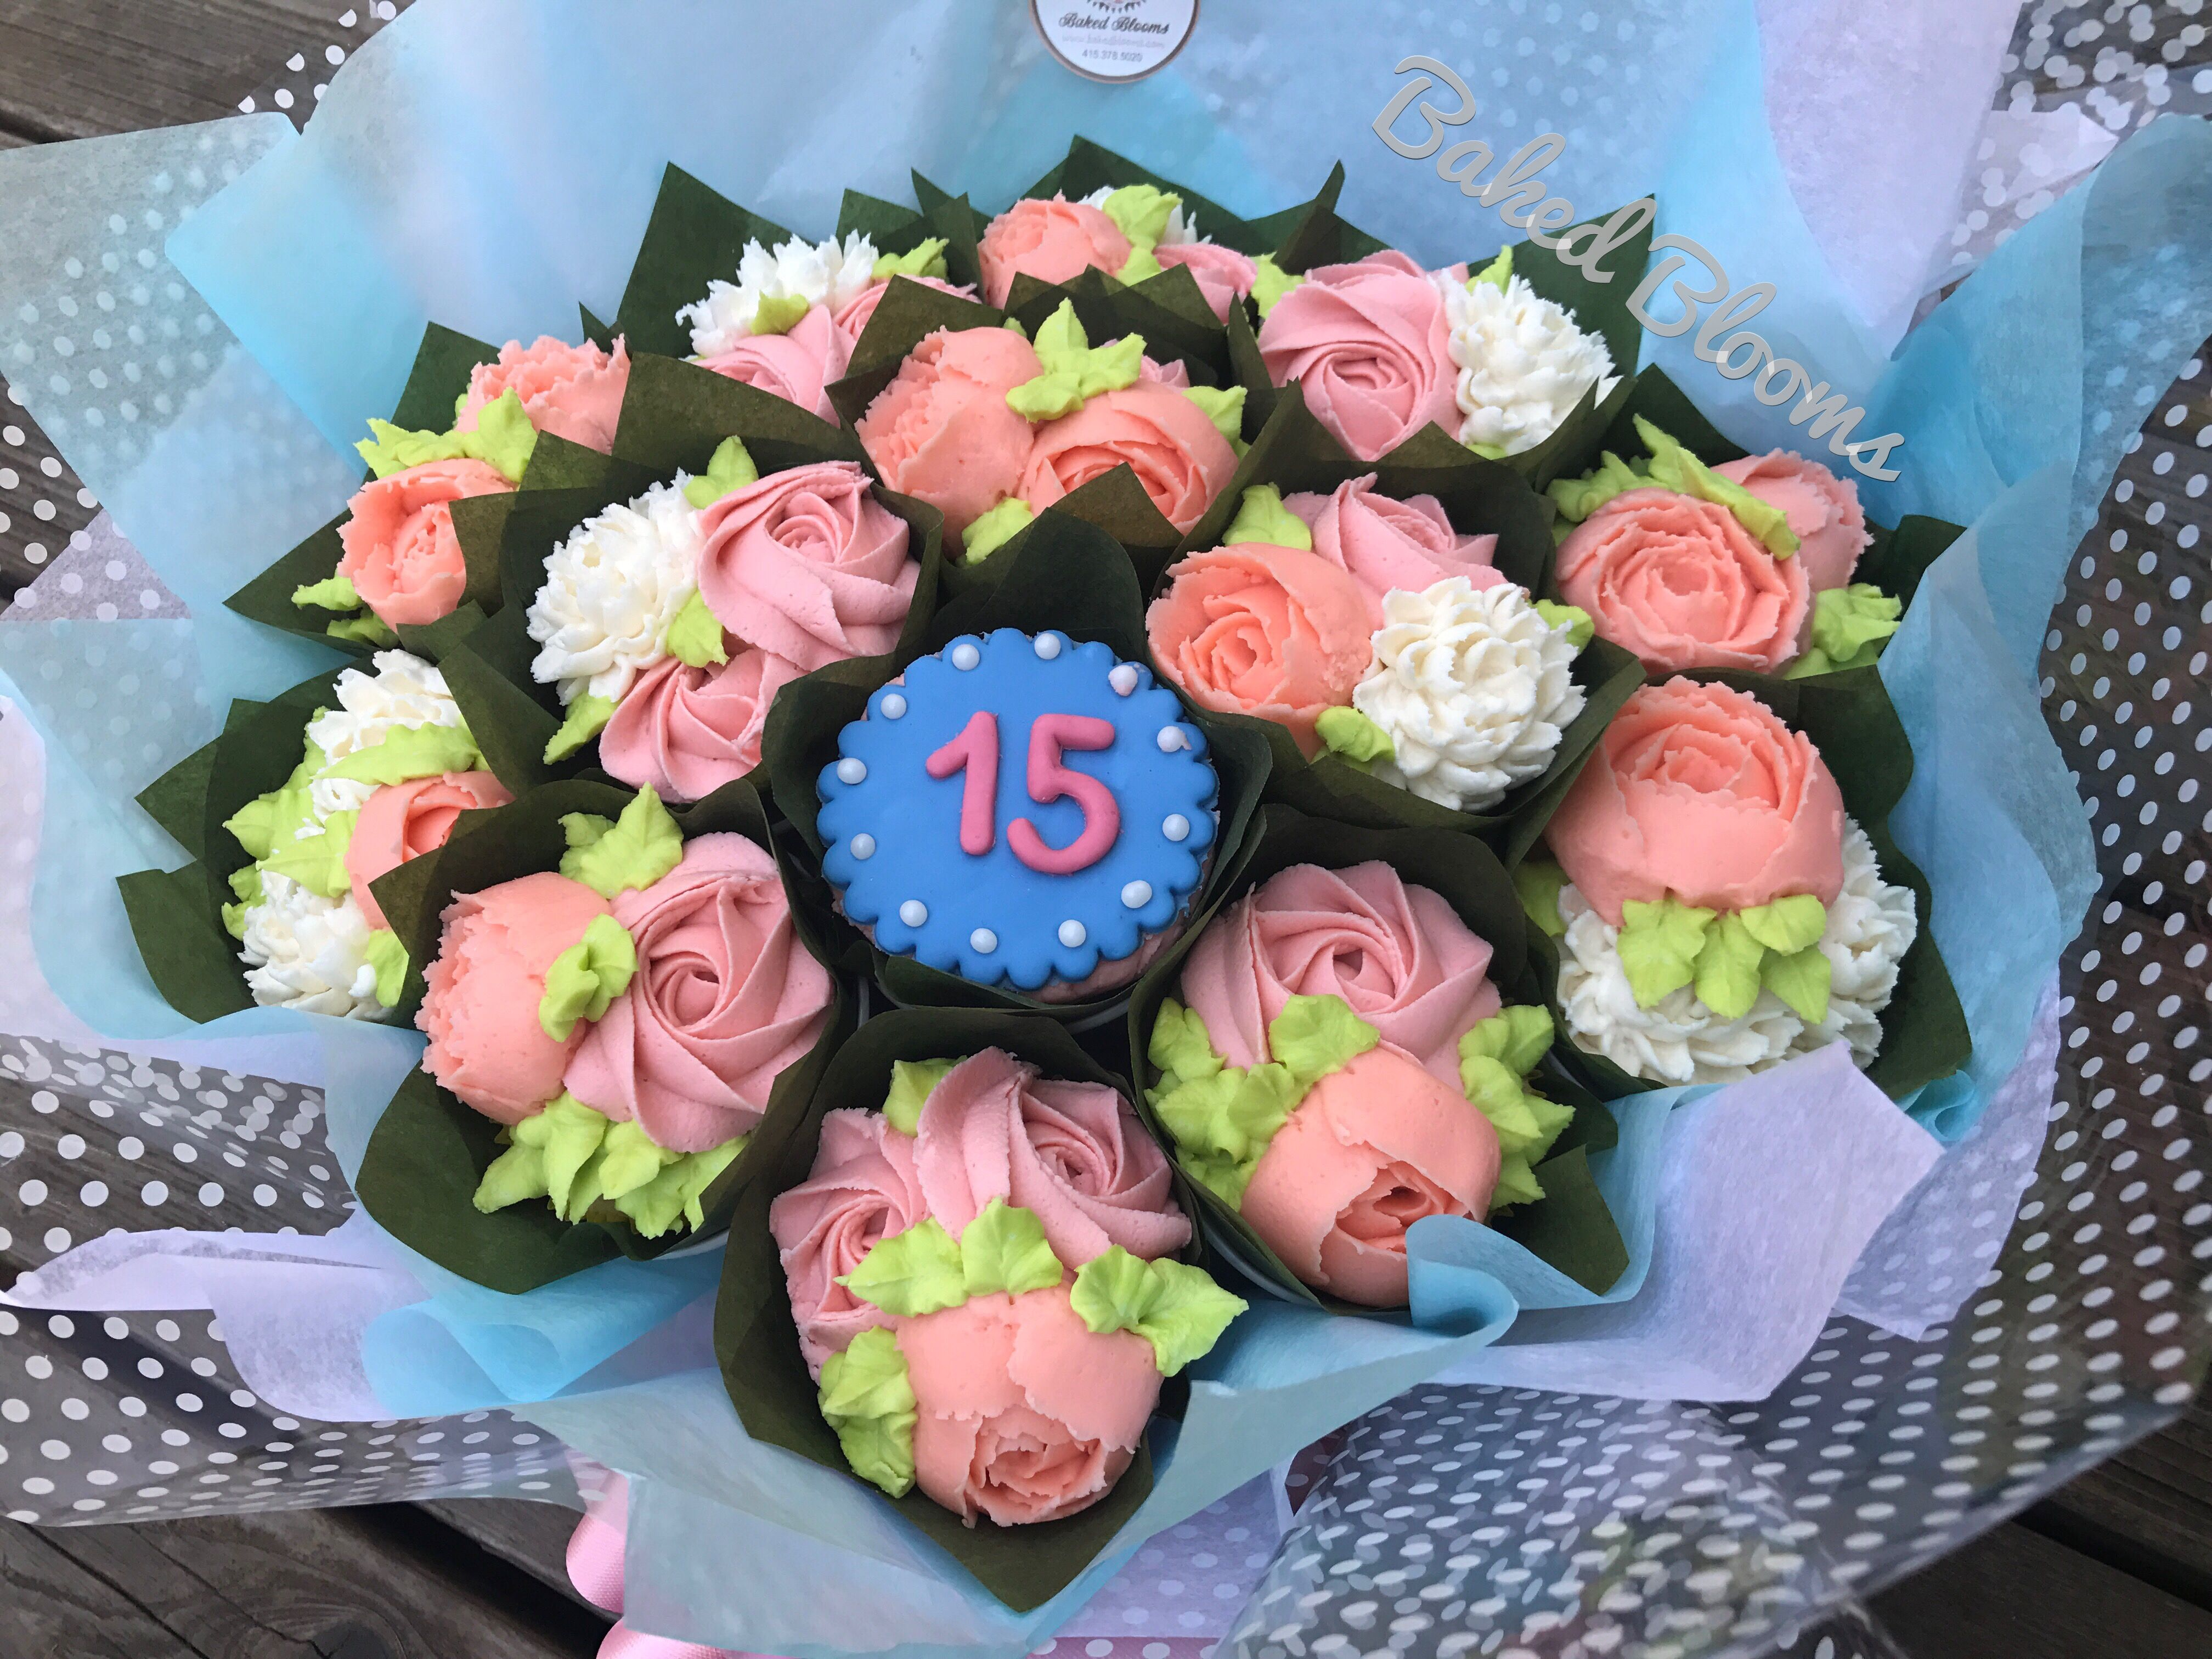 15th birthday bouquet www.bakedblooms.com | Baked Blooms | Pinterest ...